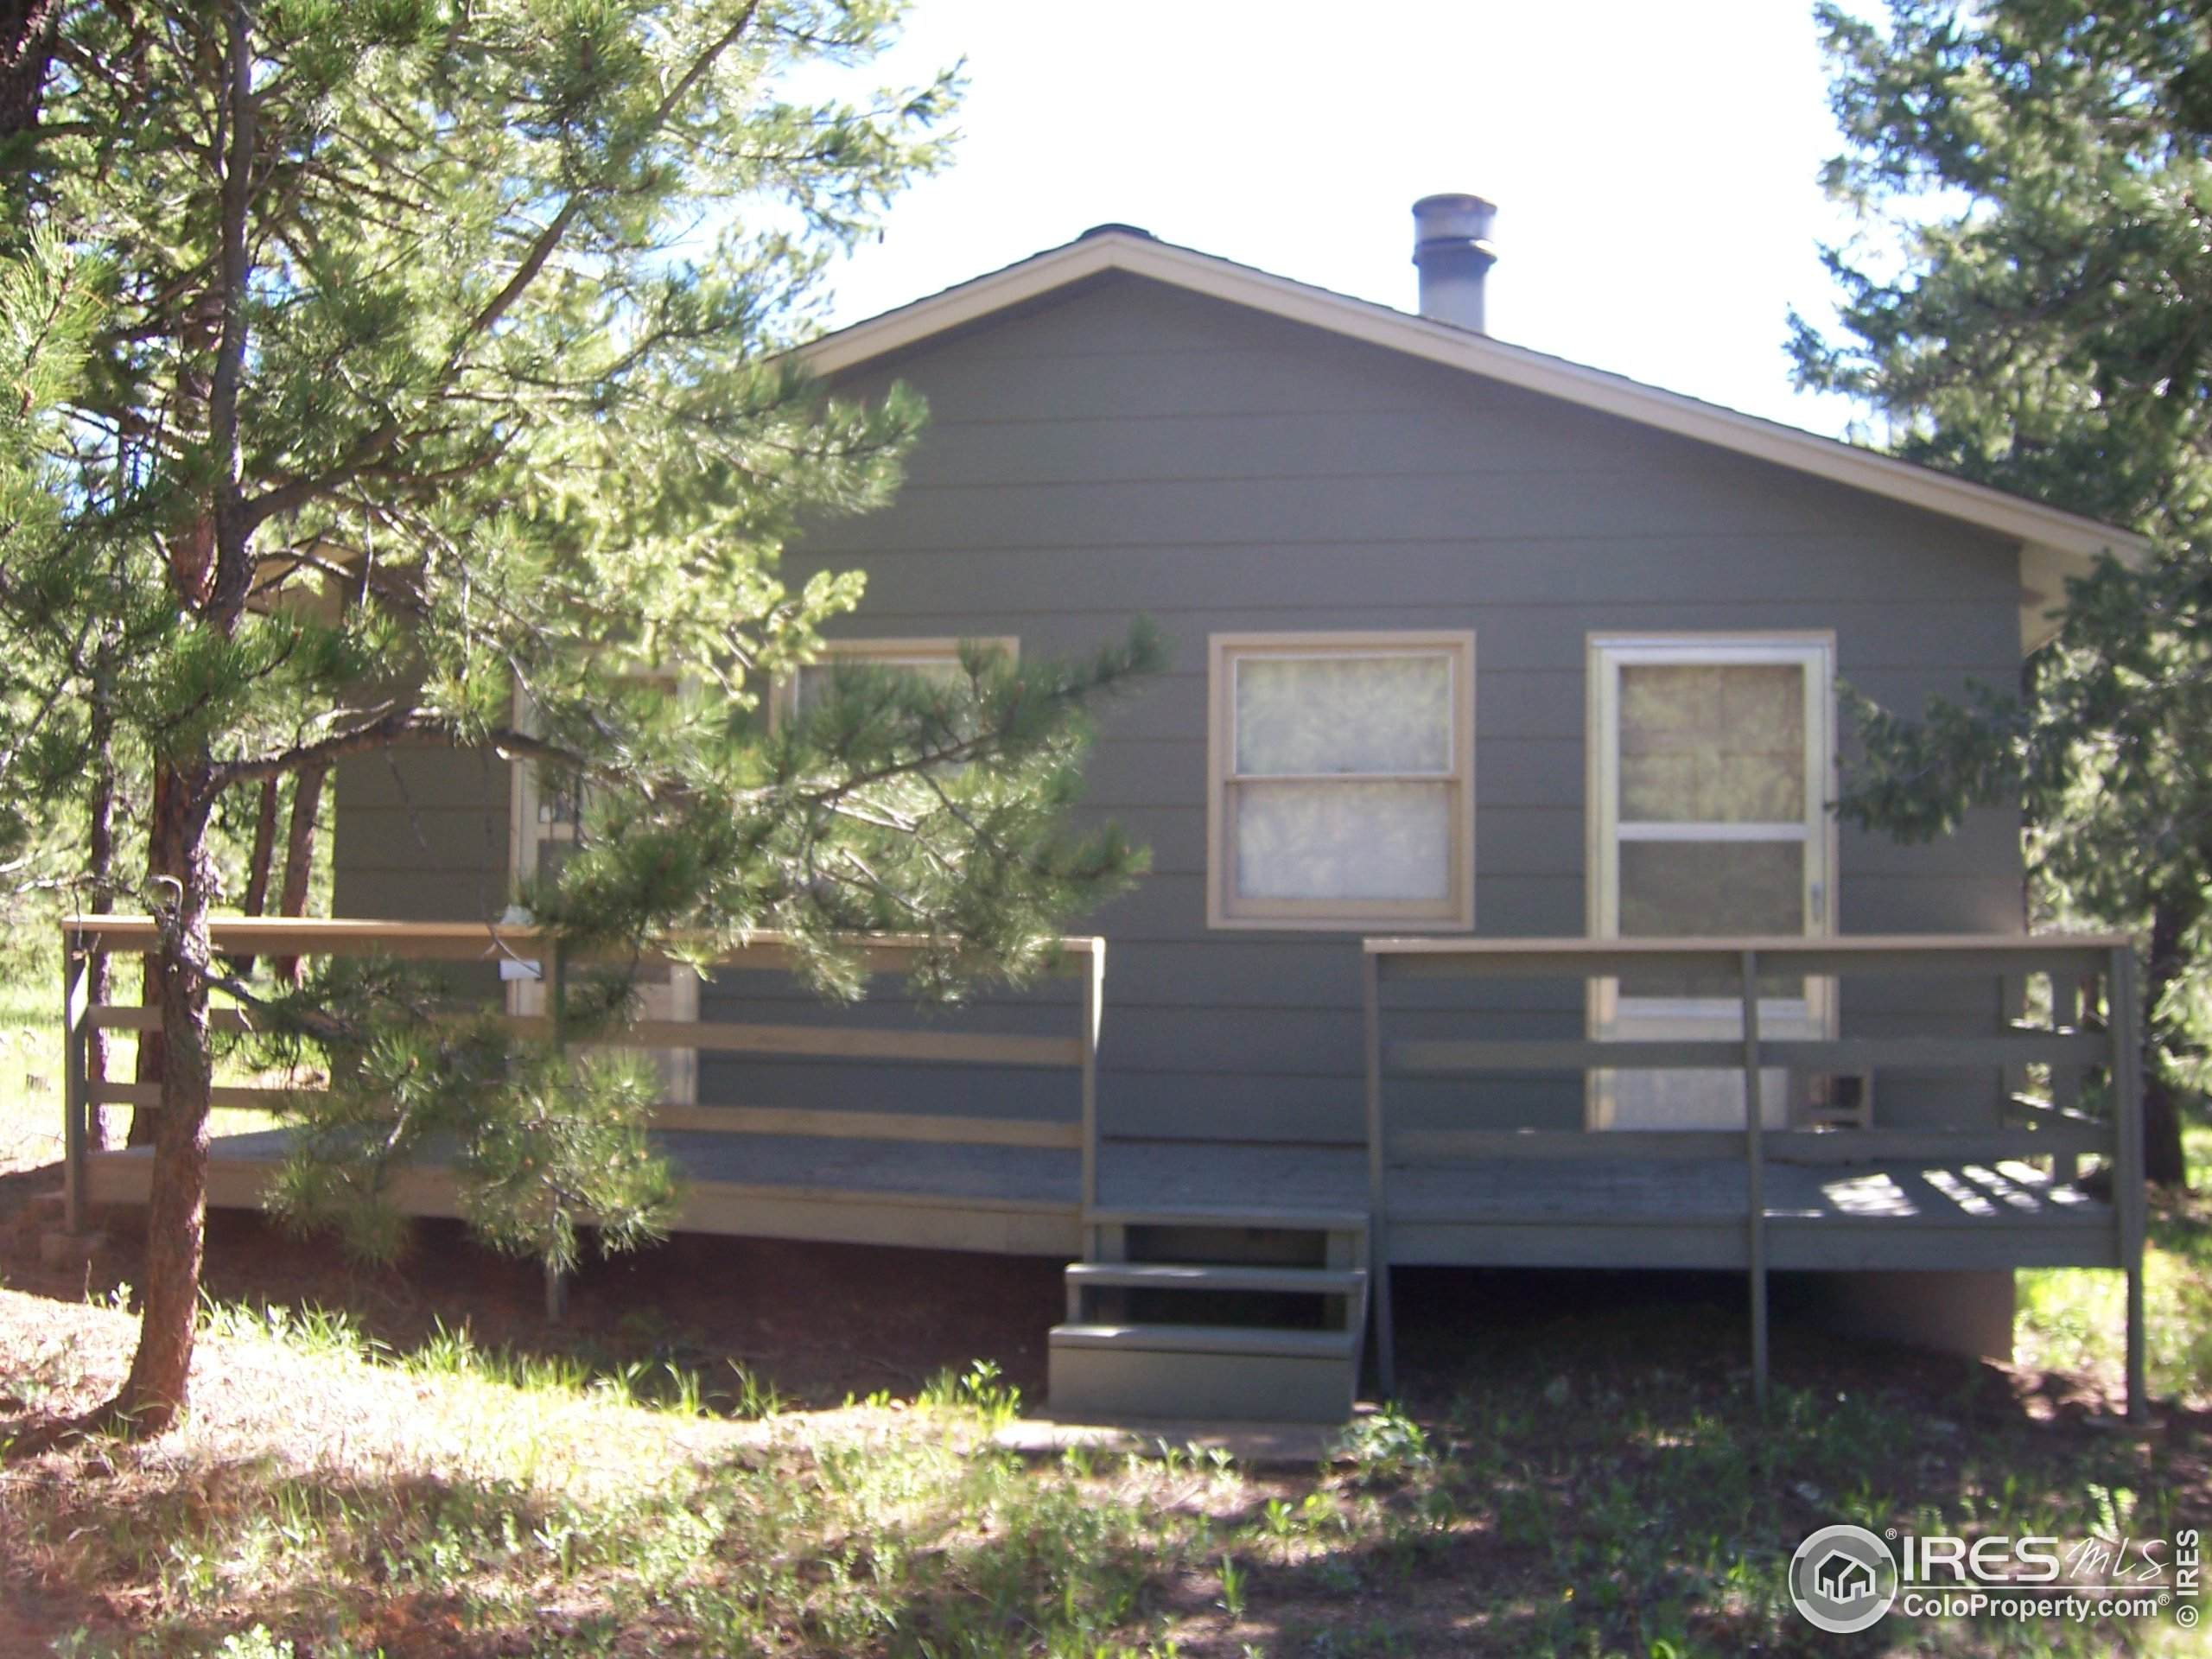 127 Homestead Pkwy, Longmont, CO 80504 (#932227) :: Mile High Luxury Real Estate